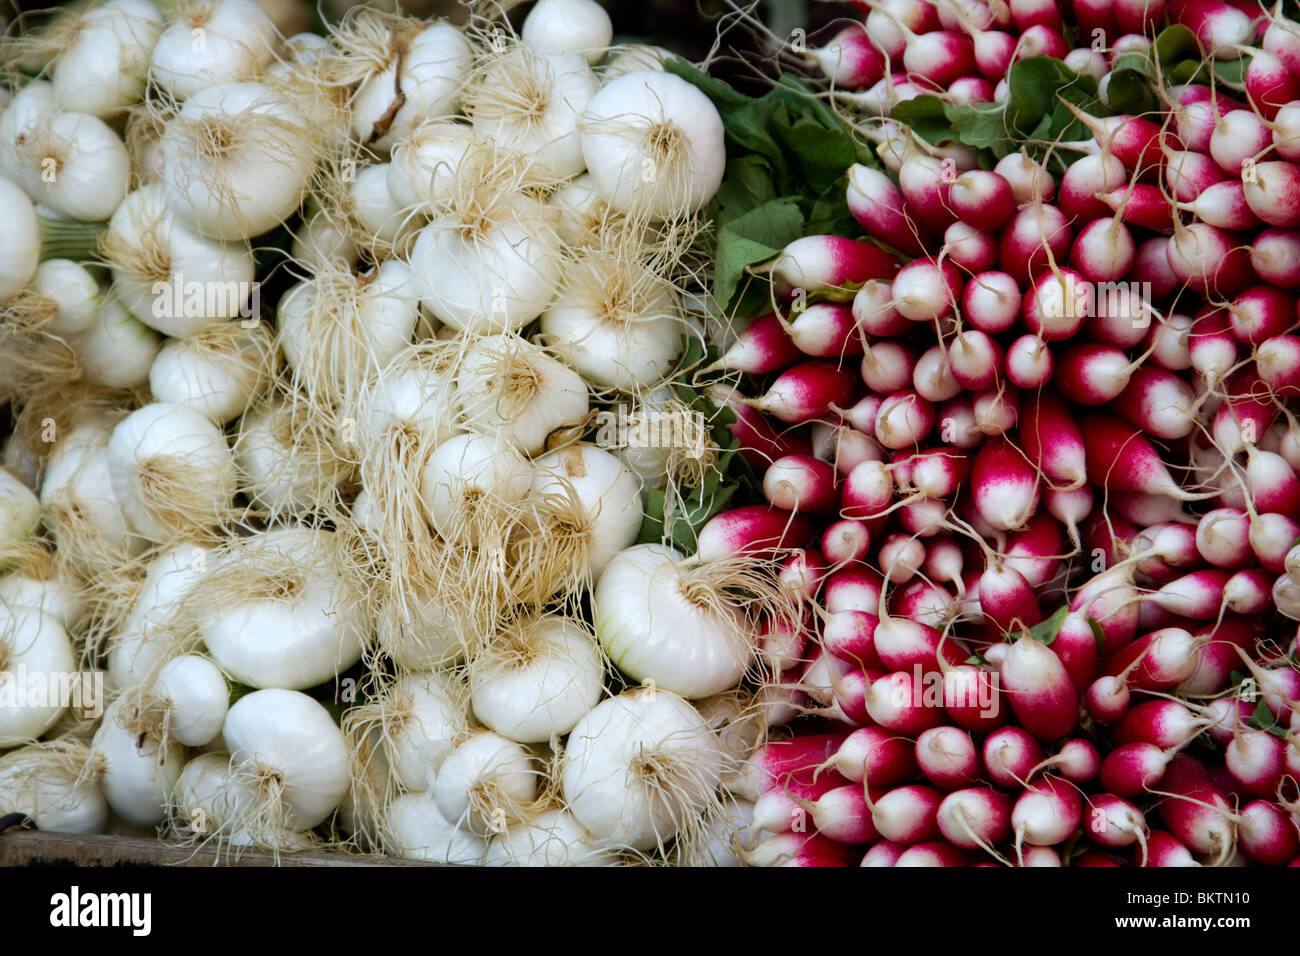 Spring onions and radishes for sale in Aligre Market, Paris - Stock Image